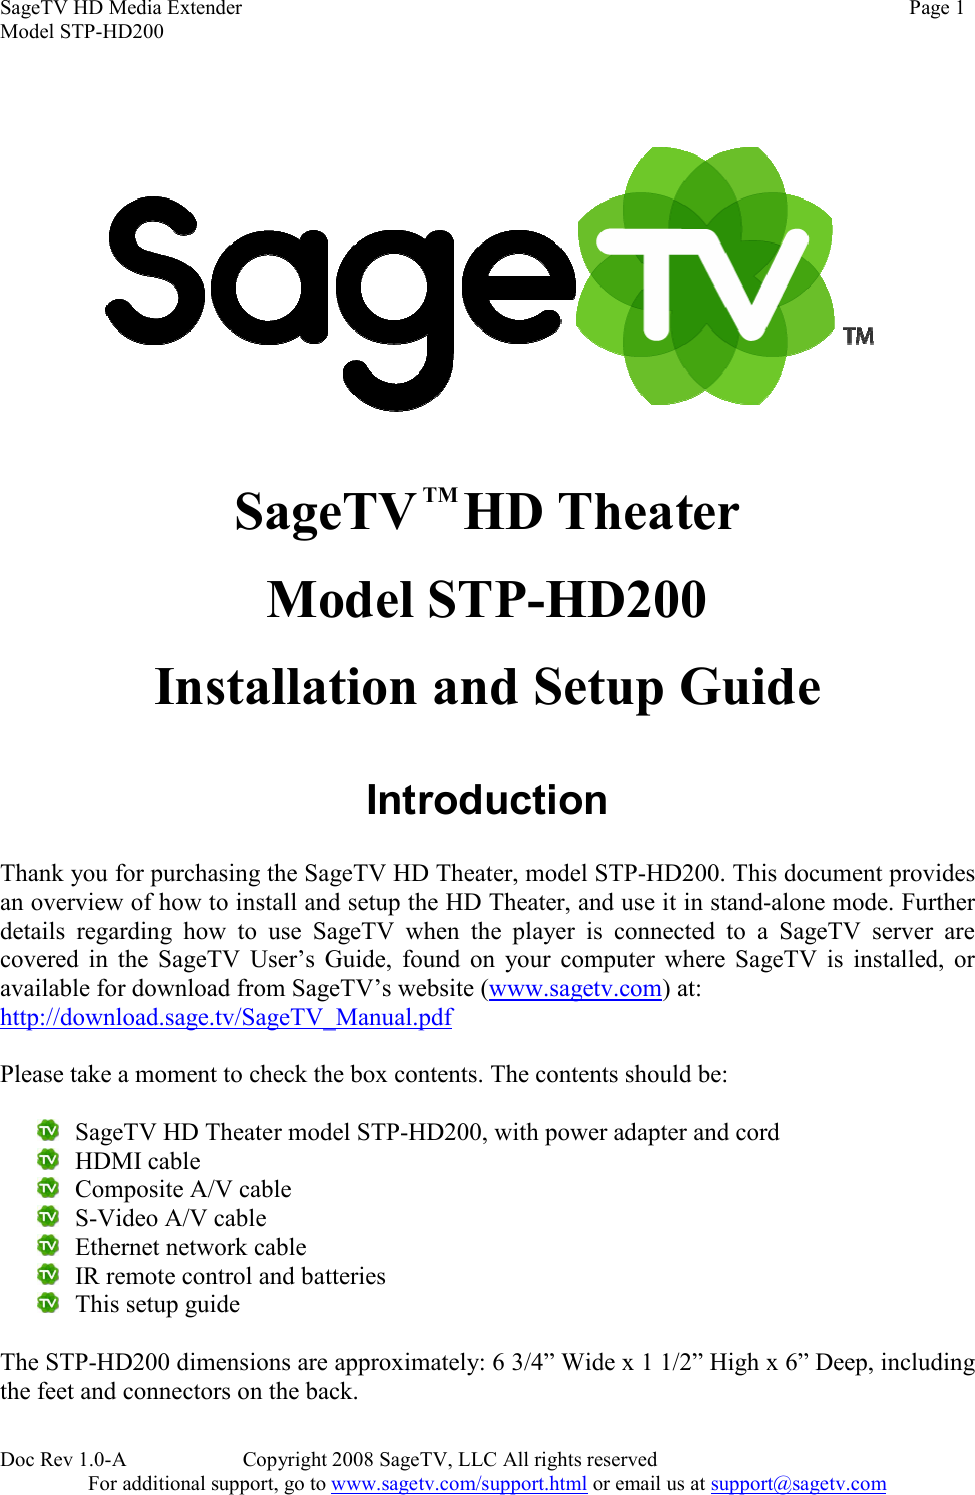 Sager Electronics Stp Hd200 Users Manual Sagetv Version 2 Guide Ir Remote Control Extender Circuit Mark 5 Page 1 Of 12